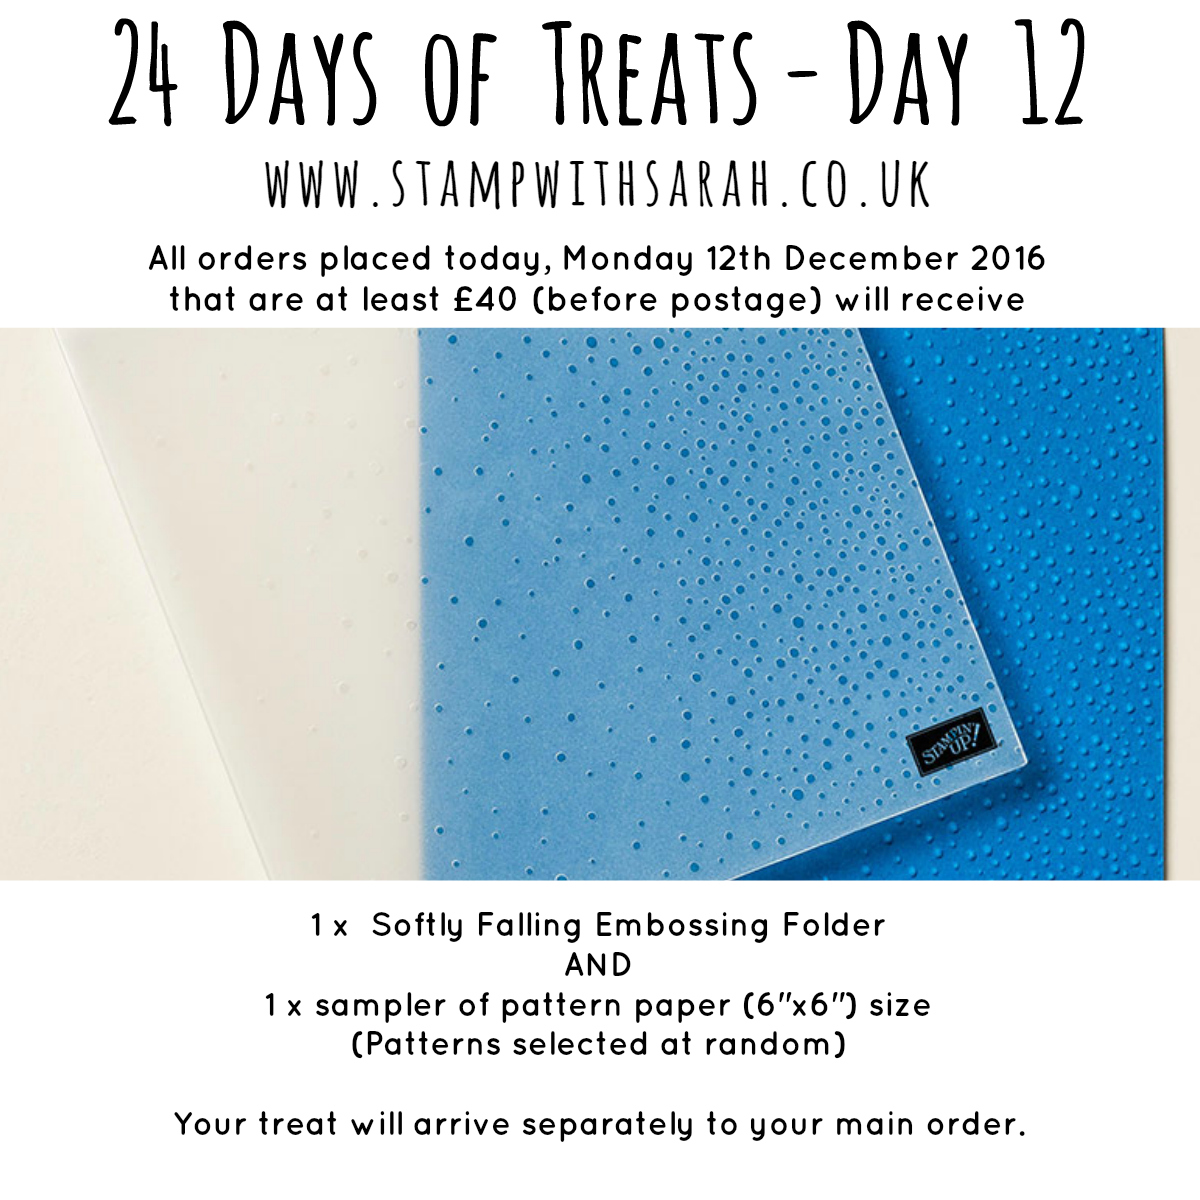 24-days-of-treats-day-12